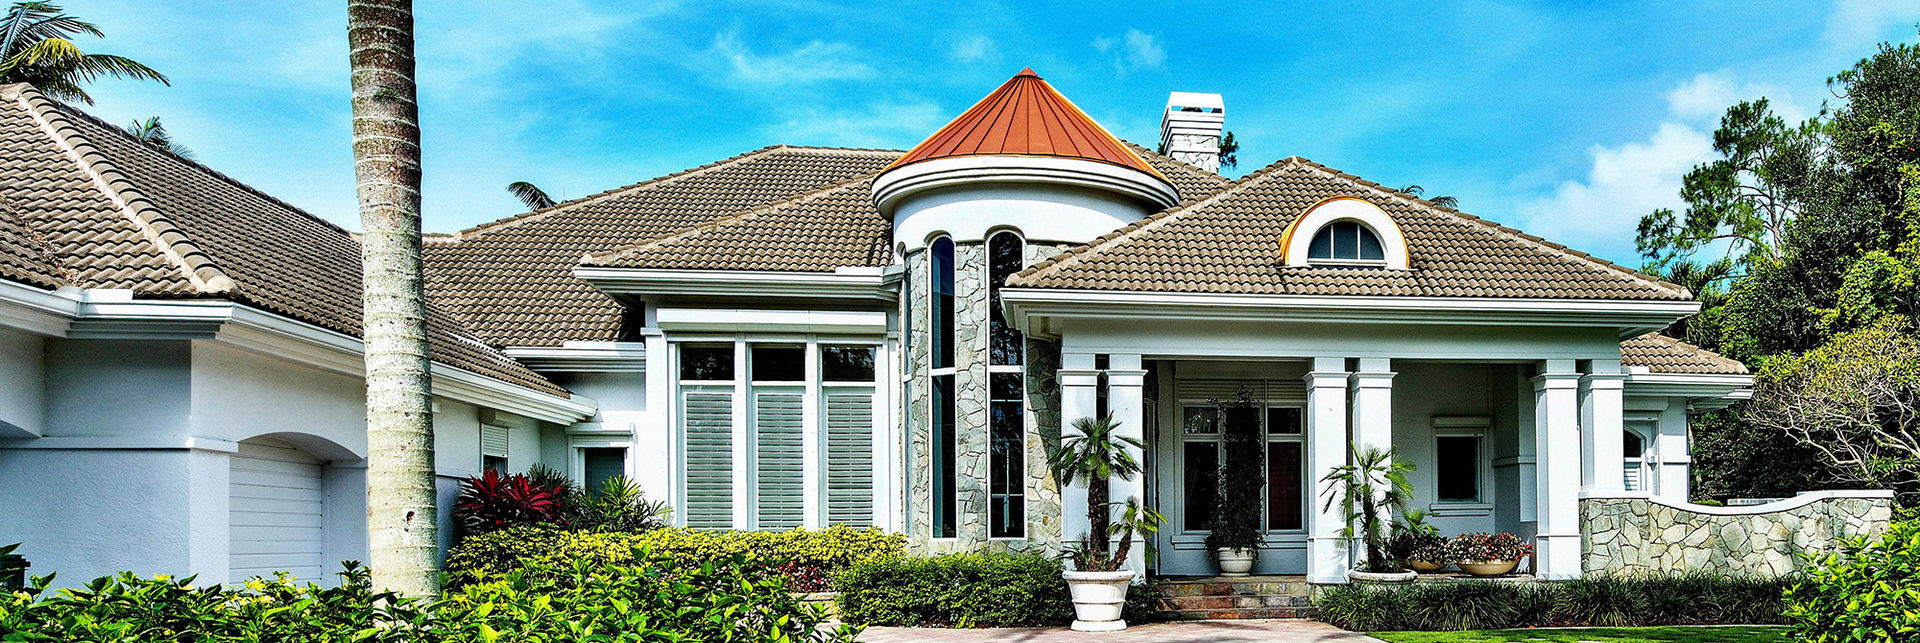 Naples Home Design and Build